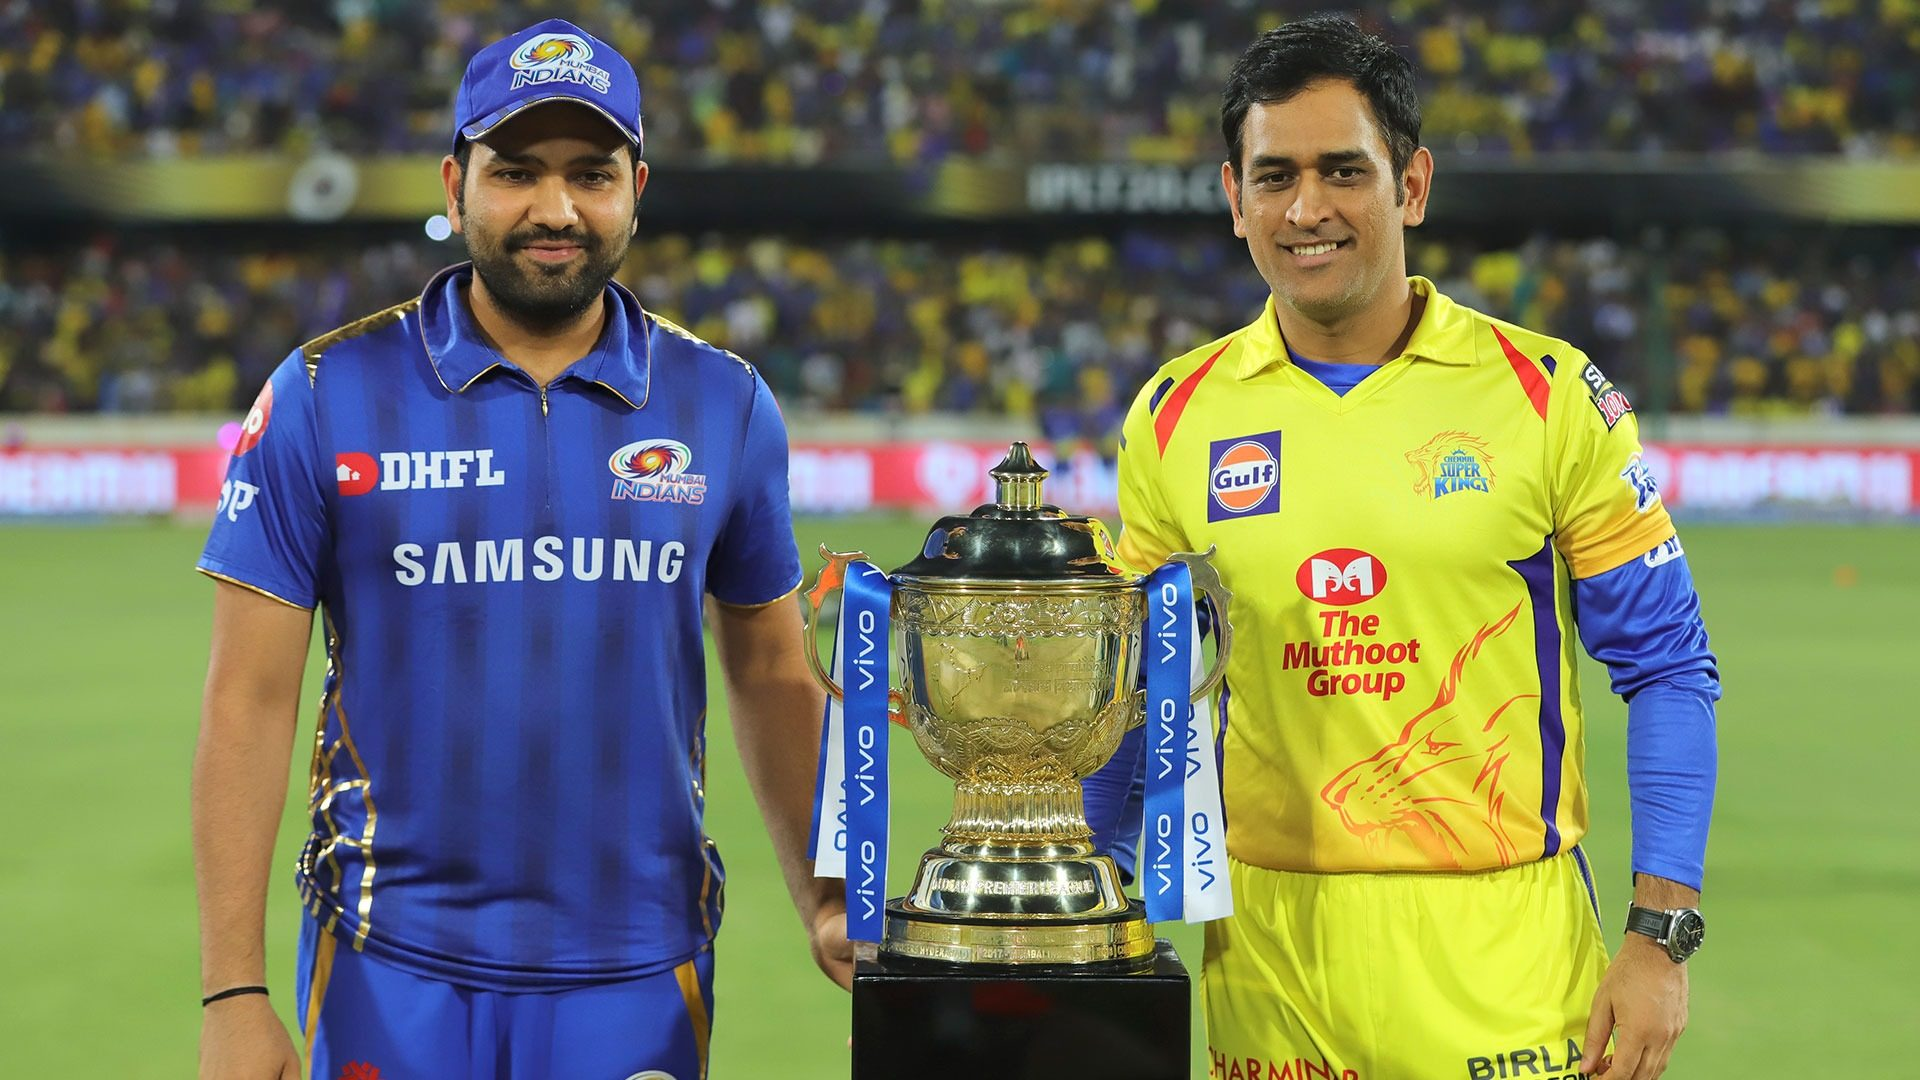 IPL 2020 – the challenges, ambitions and road ahead for players and franchises